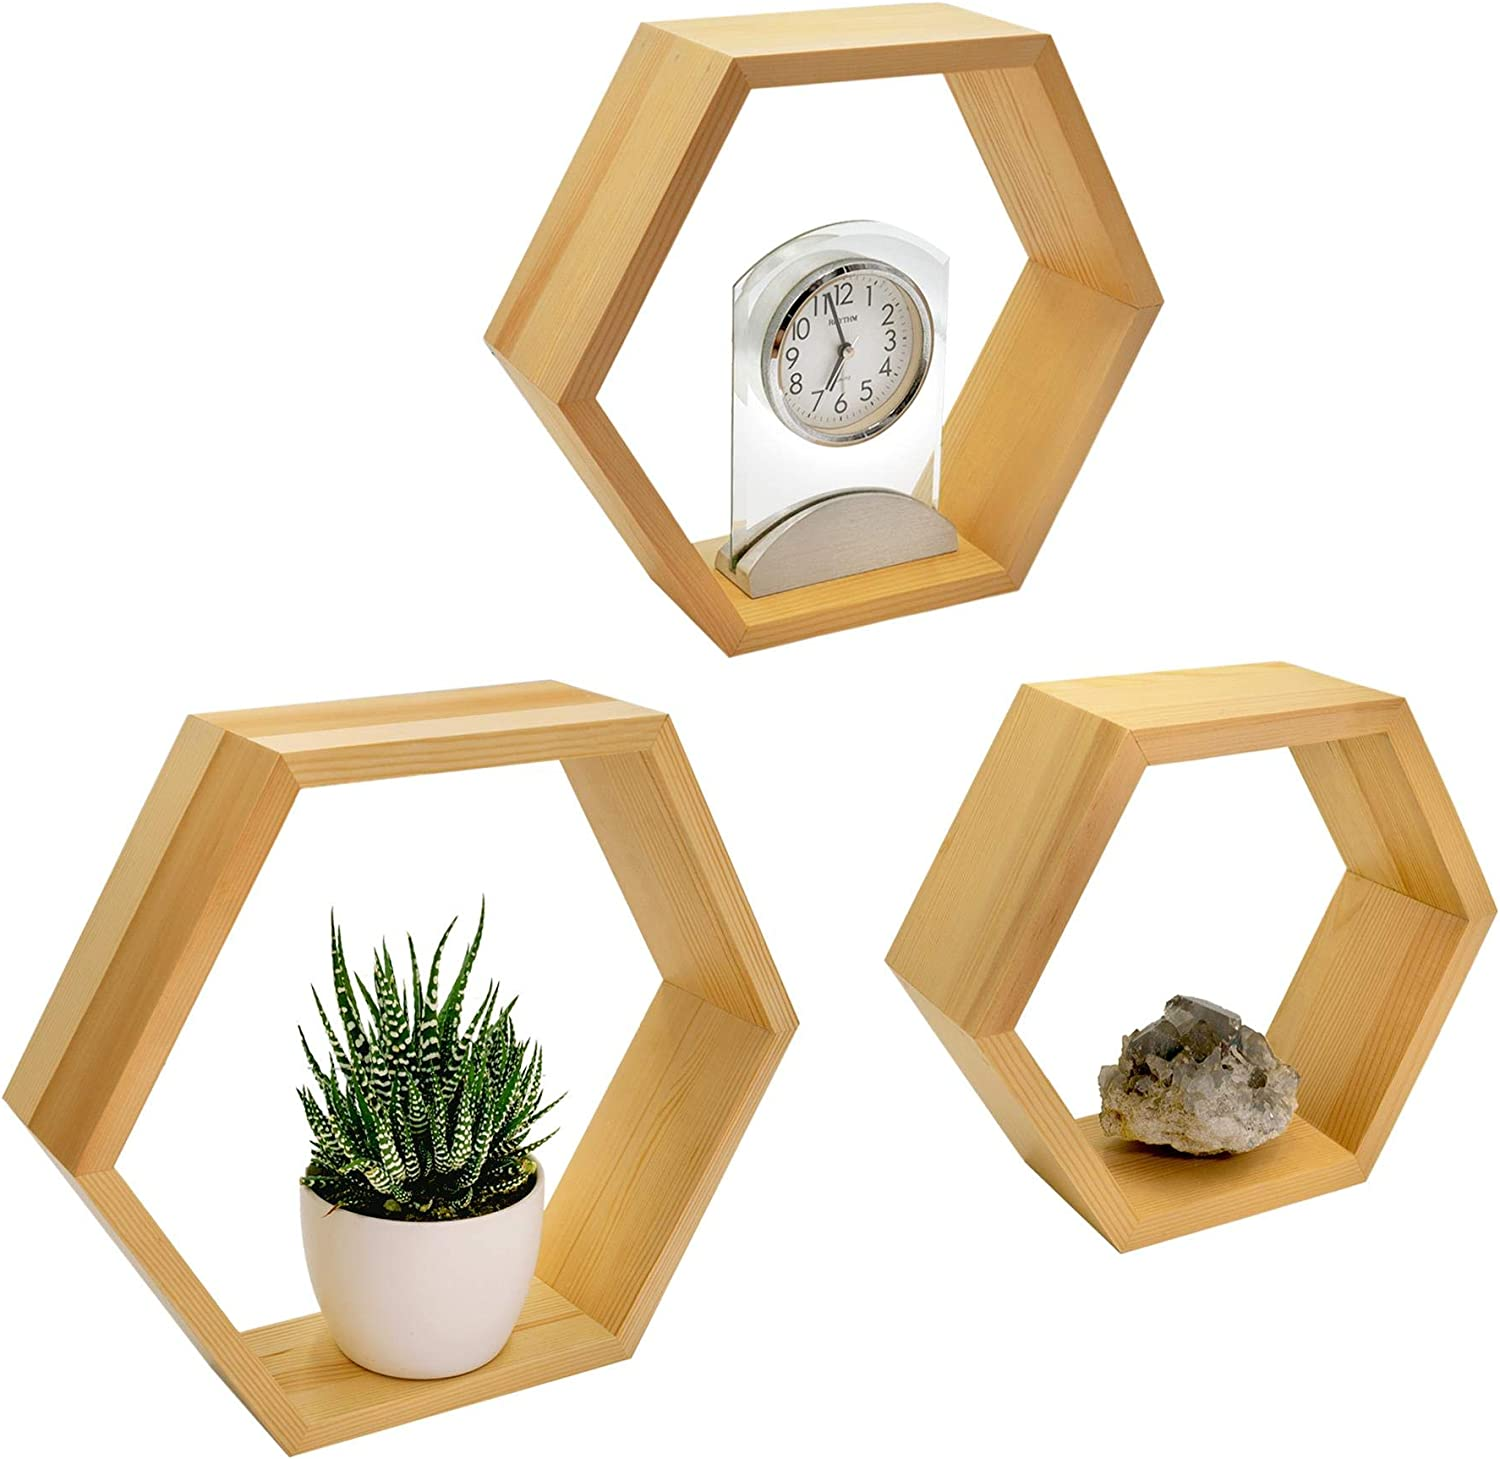 NAUMOO Natural Wood Hexagon Shelves - Wall Mounted Hexagonal Floating Honeycomb Shelves - Modern Geometric Wall Decor for Home, Living Room, Bedroom and Bathroom - Screws Anchors Included - Set of 3